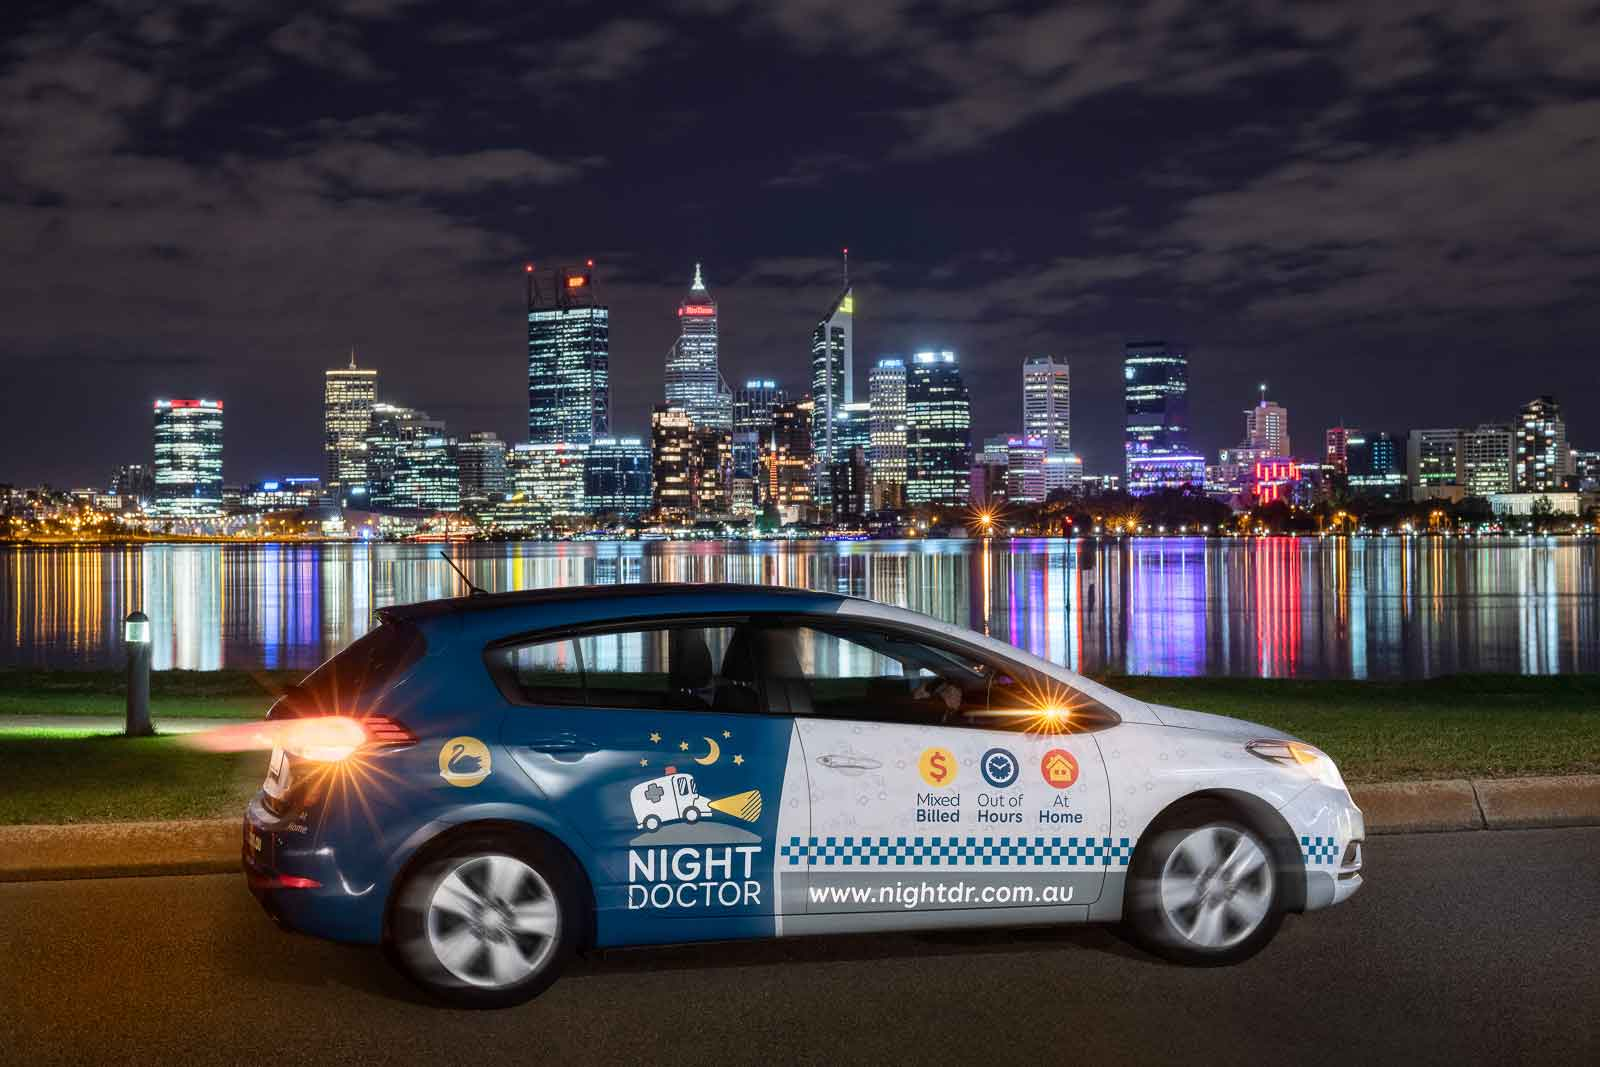 Photo of Perth cityscape and a home doctor service car